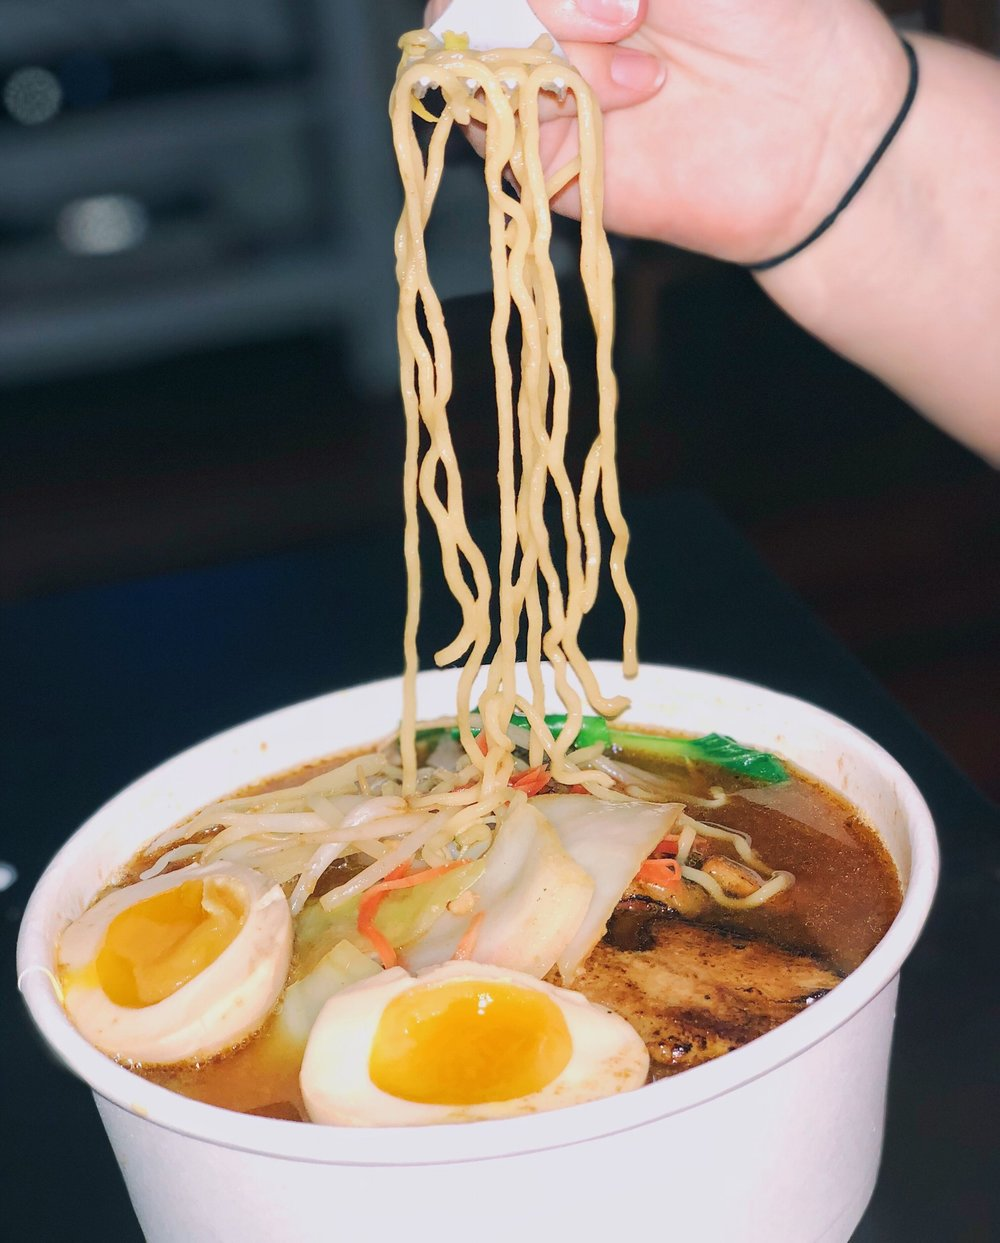 Miso - miso broth, roasted pork, egg ramen noodles, bean sprouts, cabbage, bok choy, and pickled ginger $12